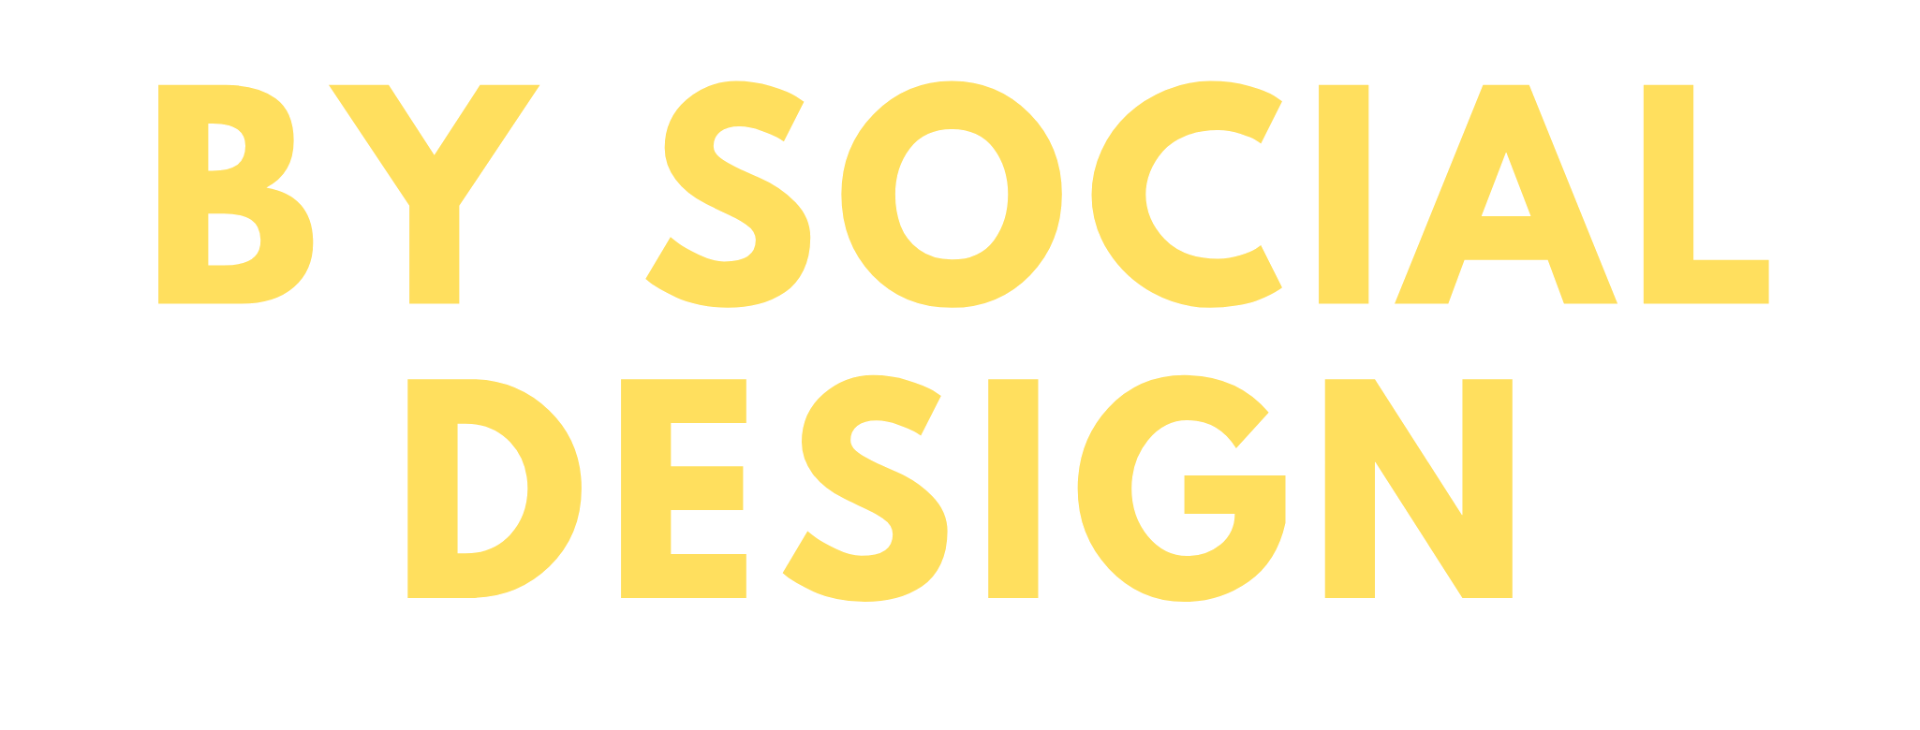 By Social Design | Web Design | SEO | Social Media